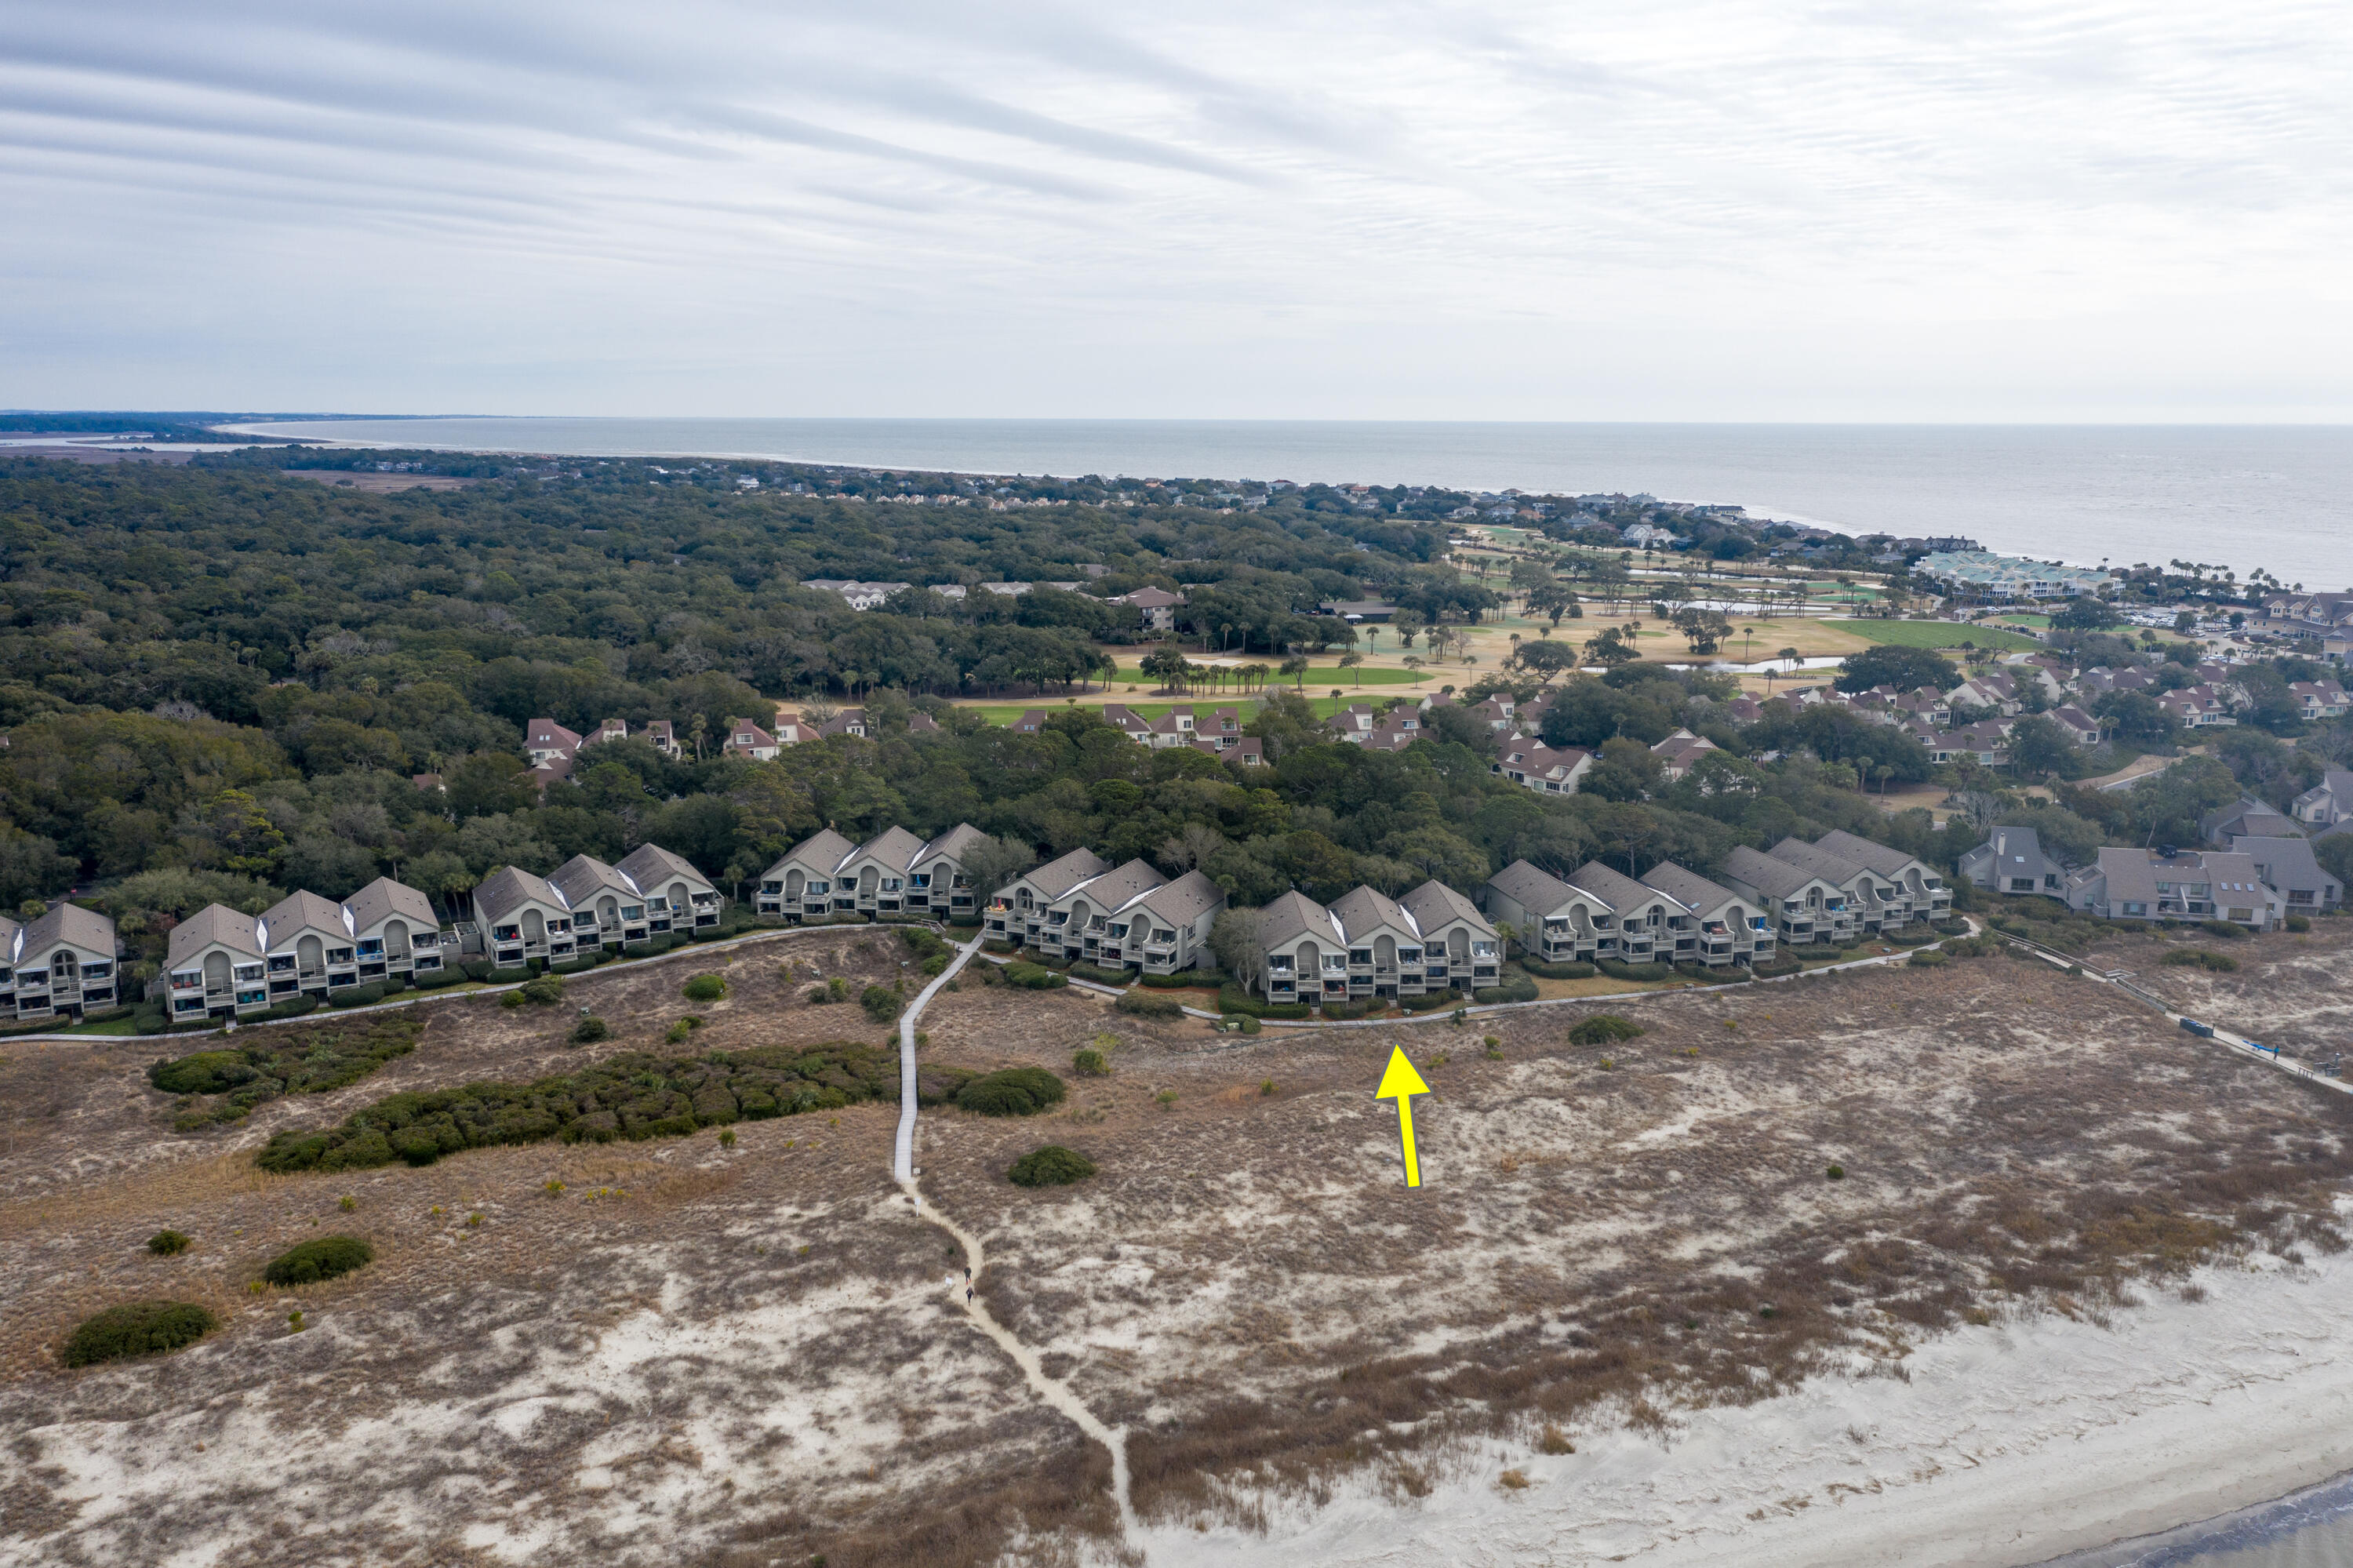 Seabrook Island Homes For Sale - 1329 Pelican Watch Villas, Seabrook Island, SC - 17